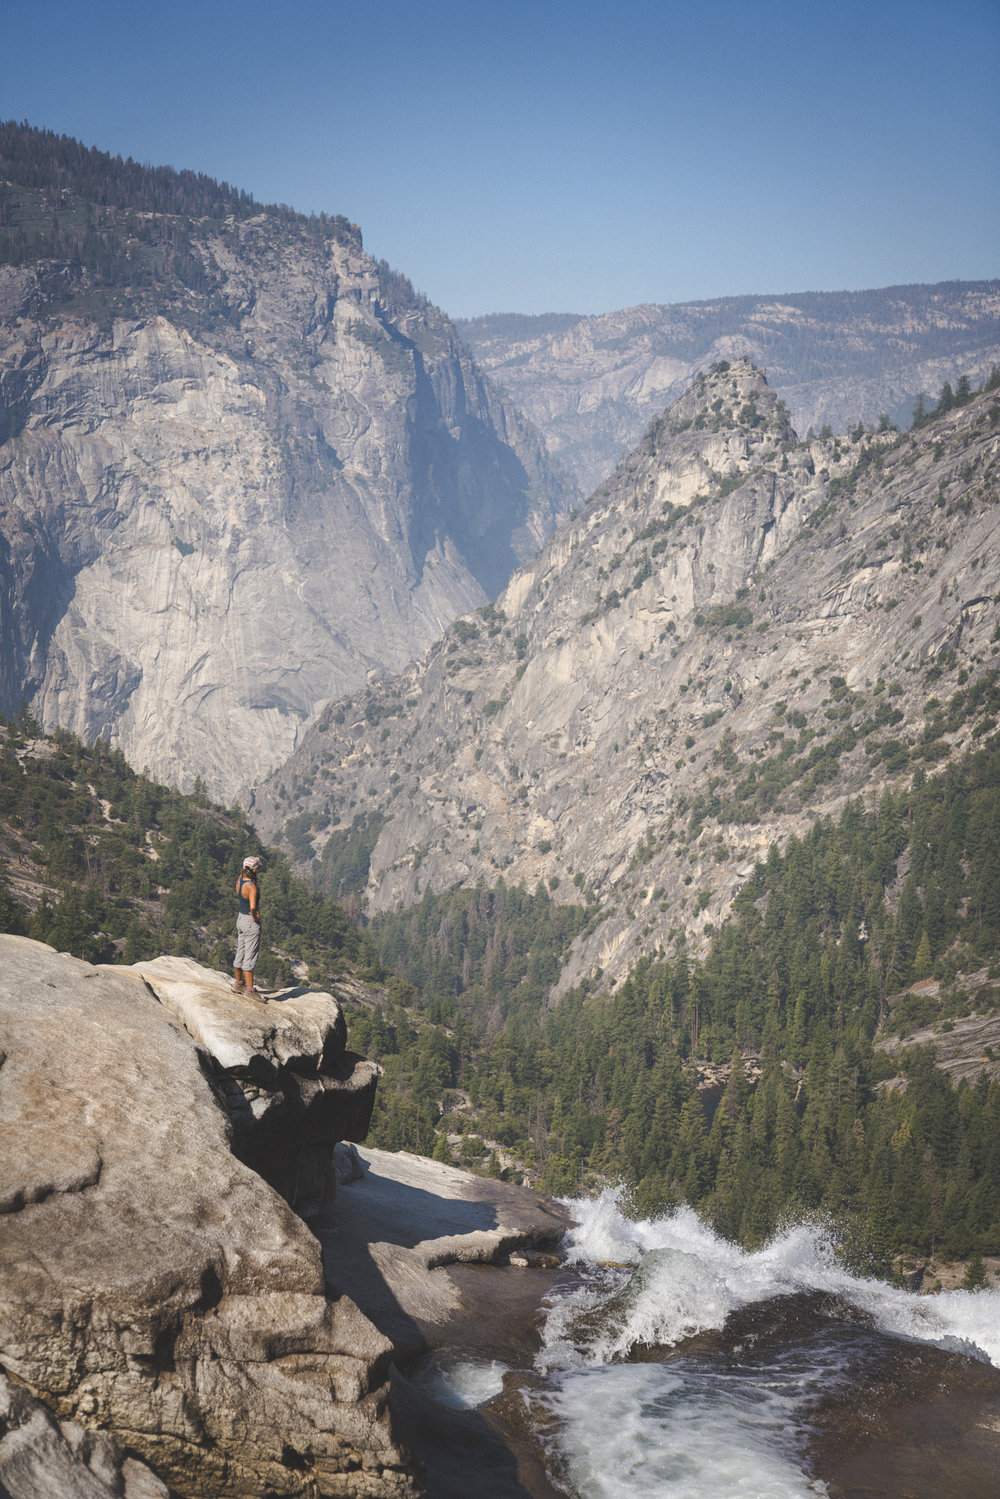 Looking out from the top of Nevada Fall. Photo by Mike Struna  @designms